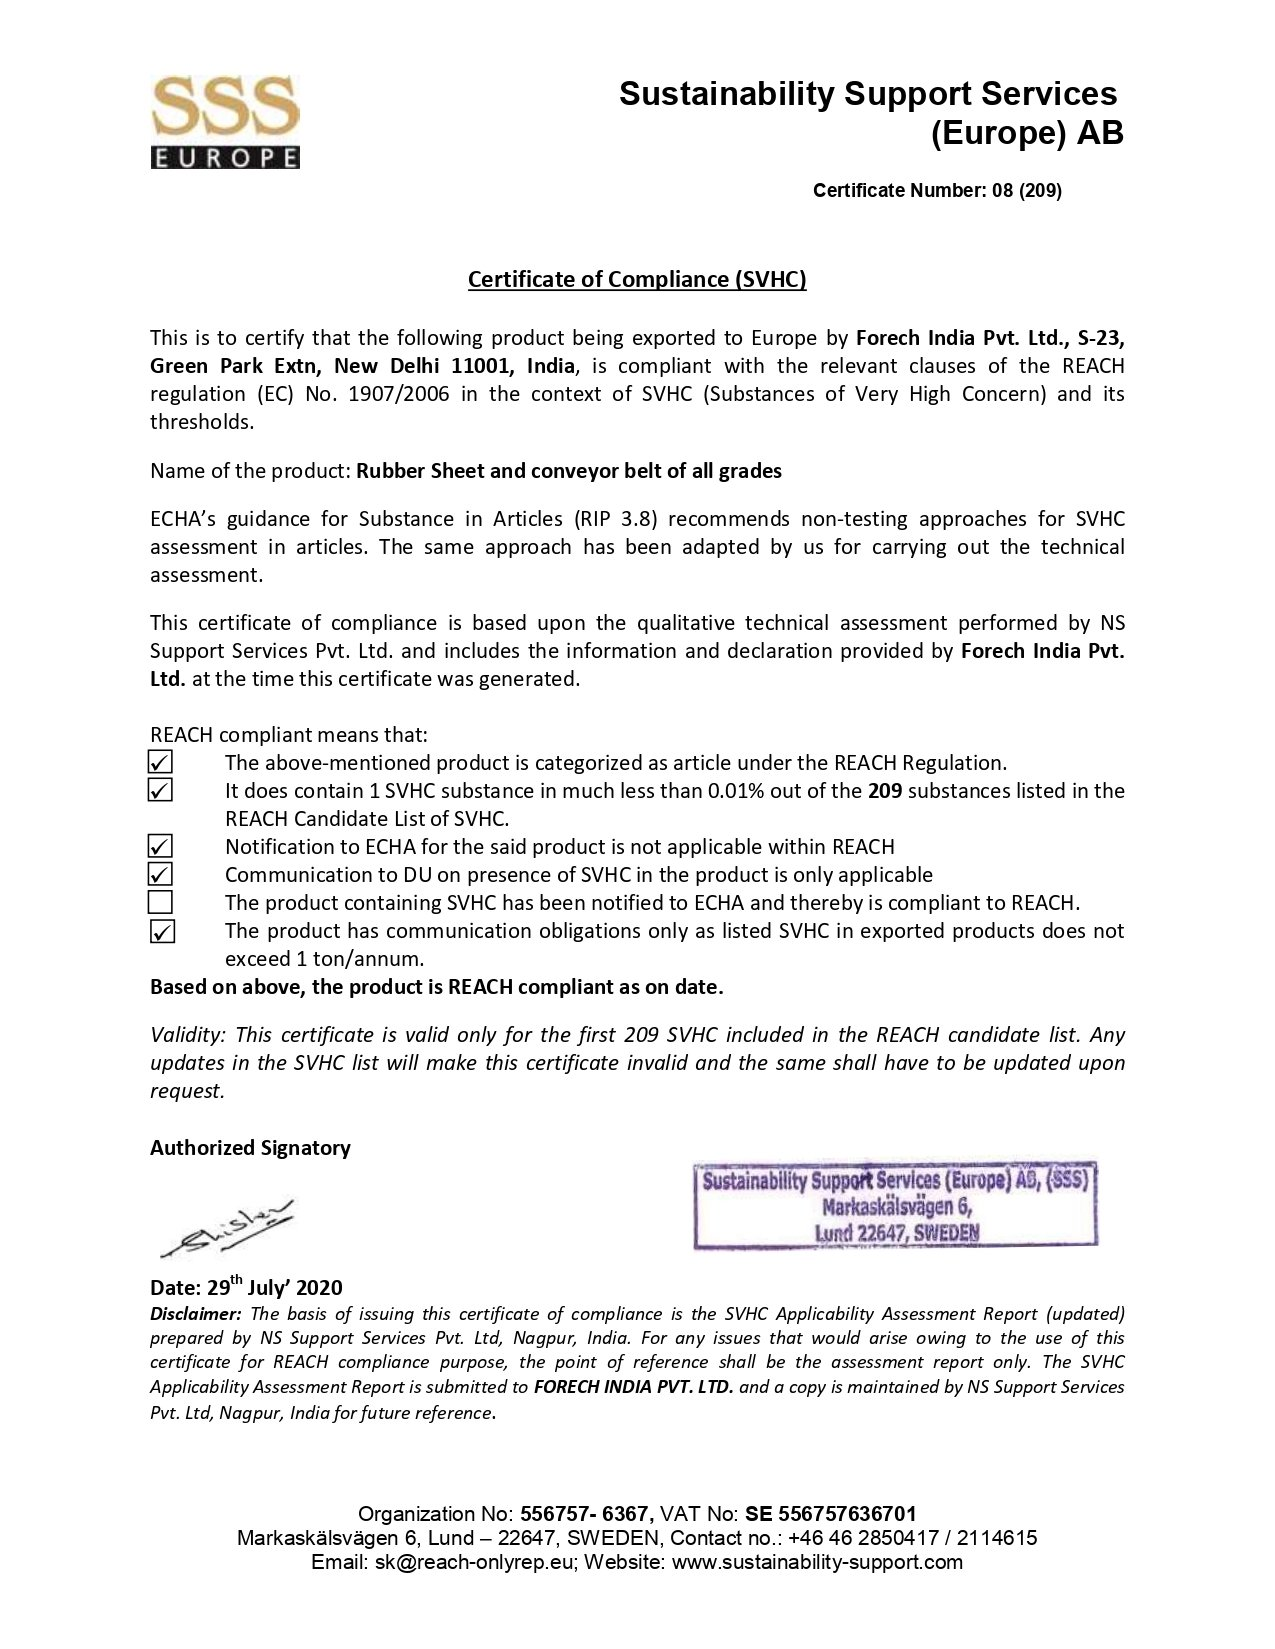 Scan of Certificate of Compliance- Forech India Pvt. Ltd. certificate